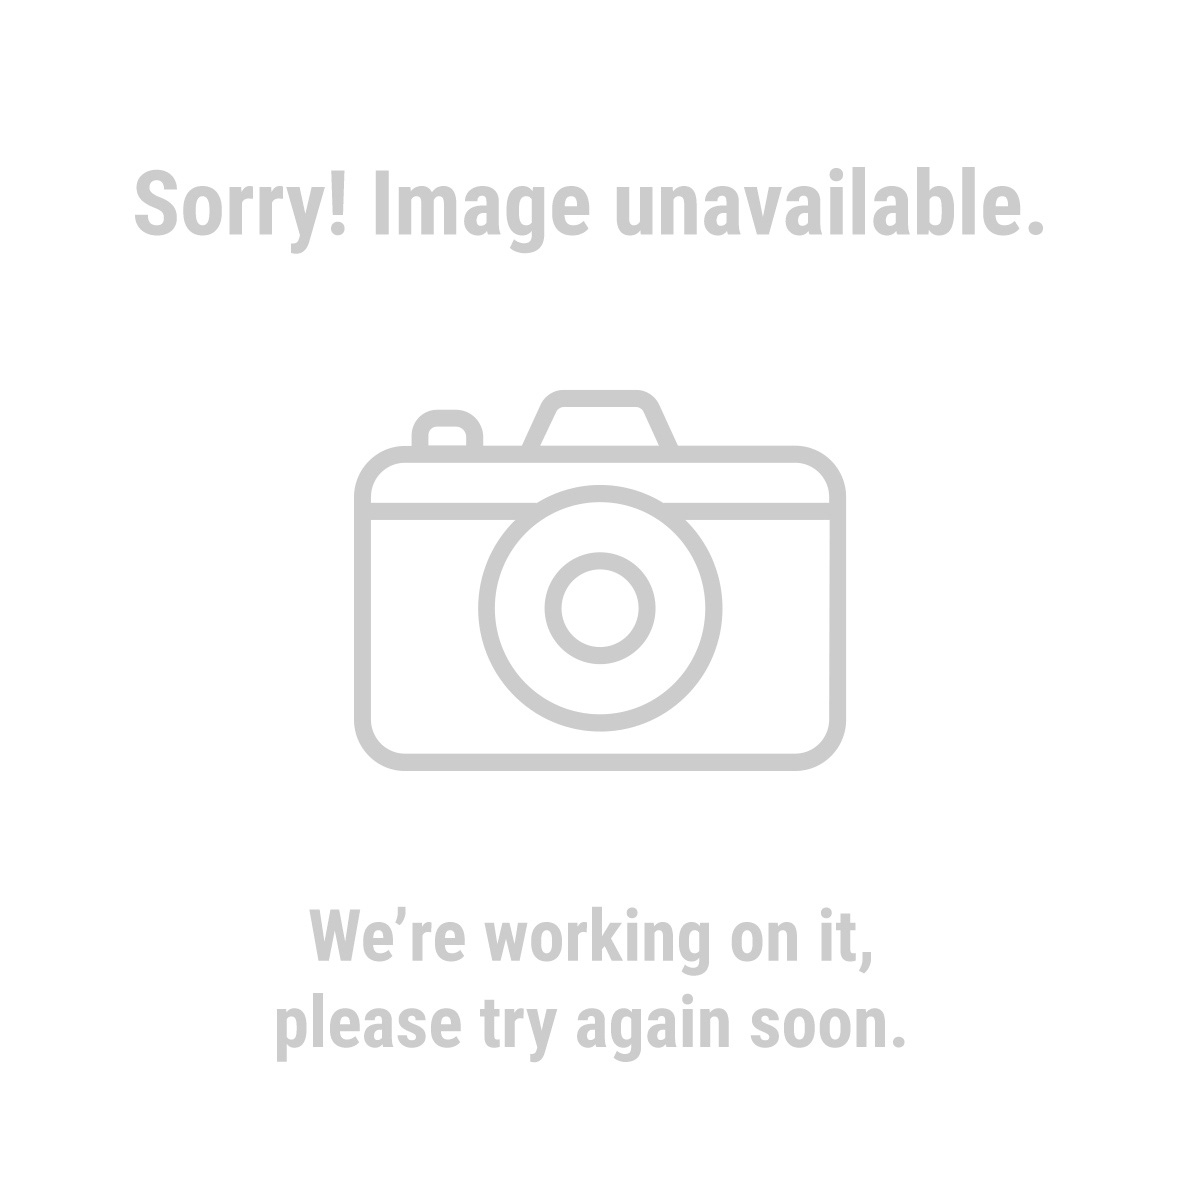 Central Hydraulics® 93167 Towable Ride-On Trencher